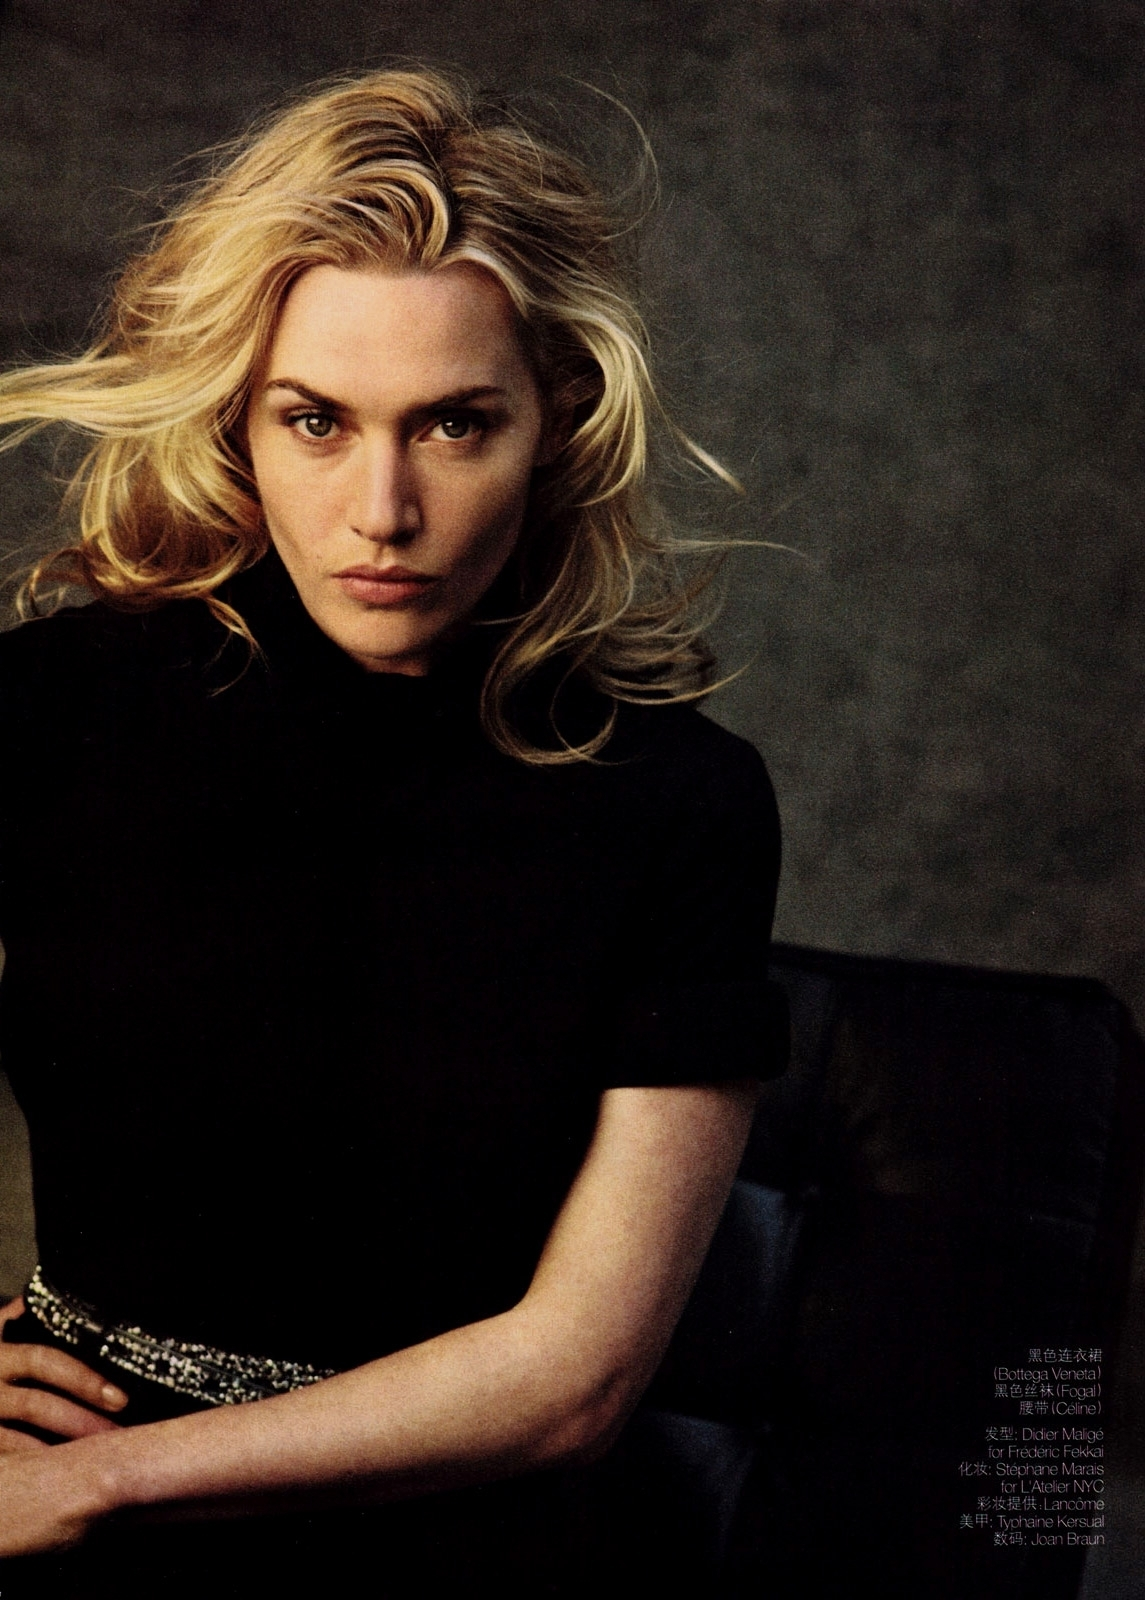 Vogue China October 2010 Kate Winslet Photo 15809292